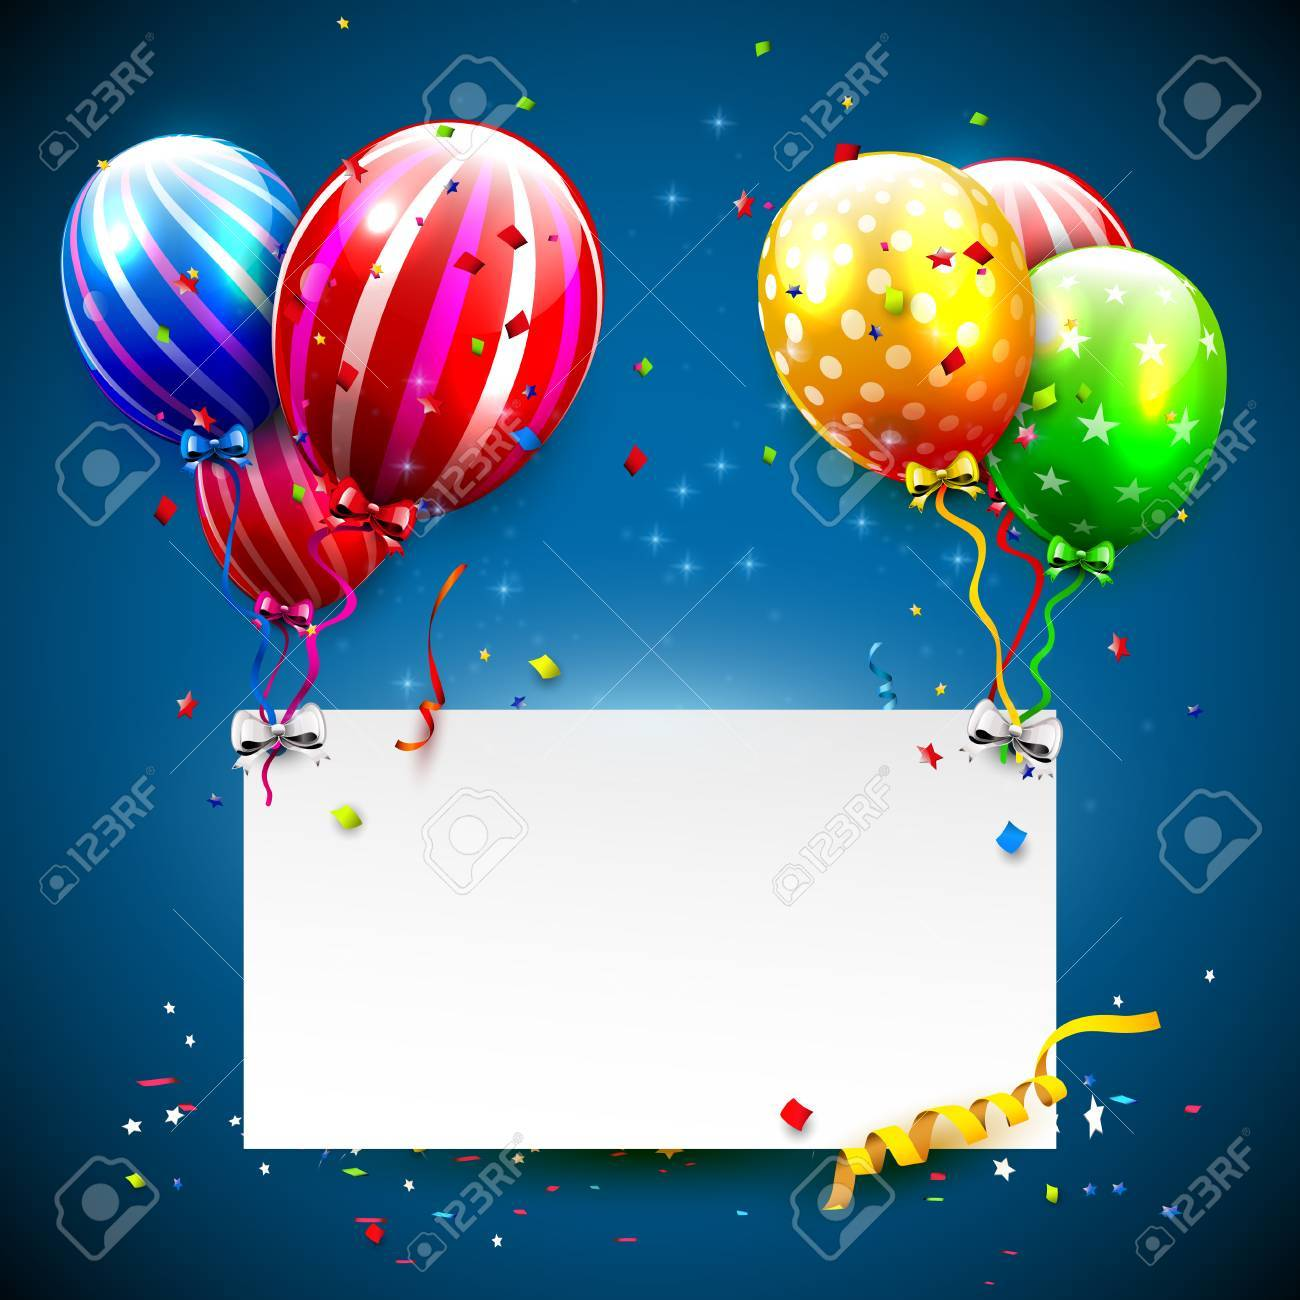 luxury party balloons and confetti on blue background party